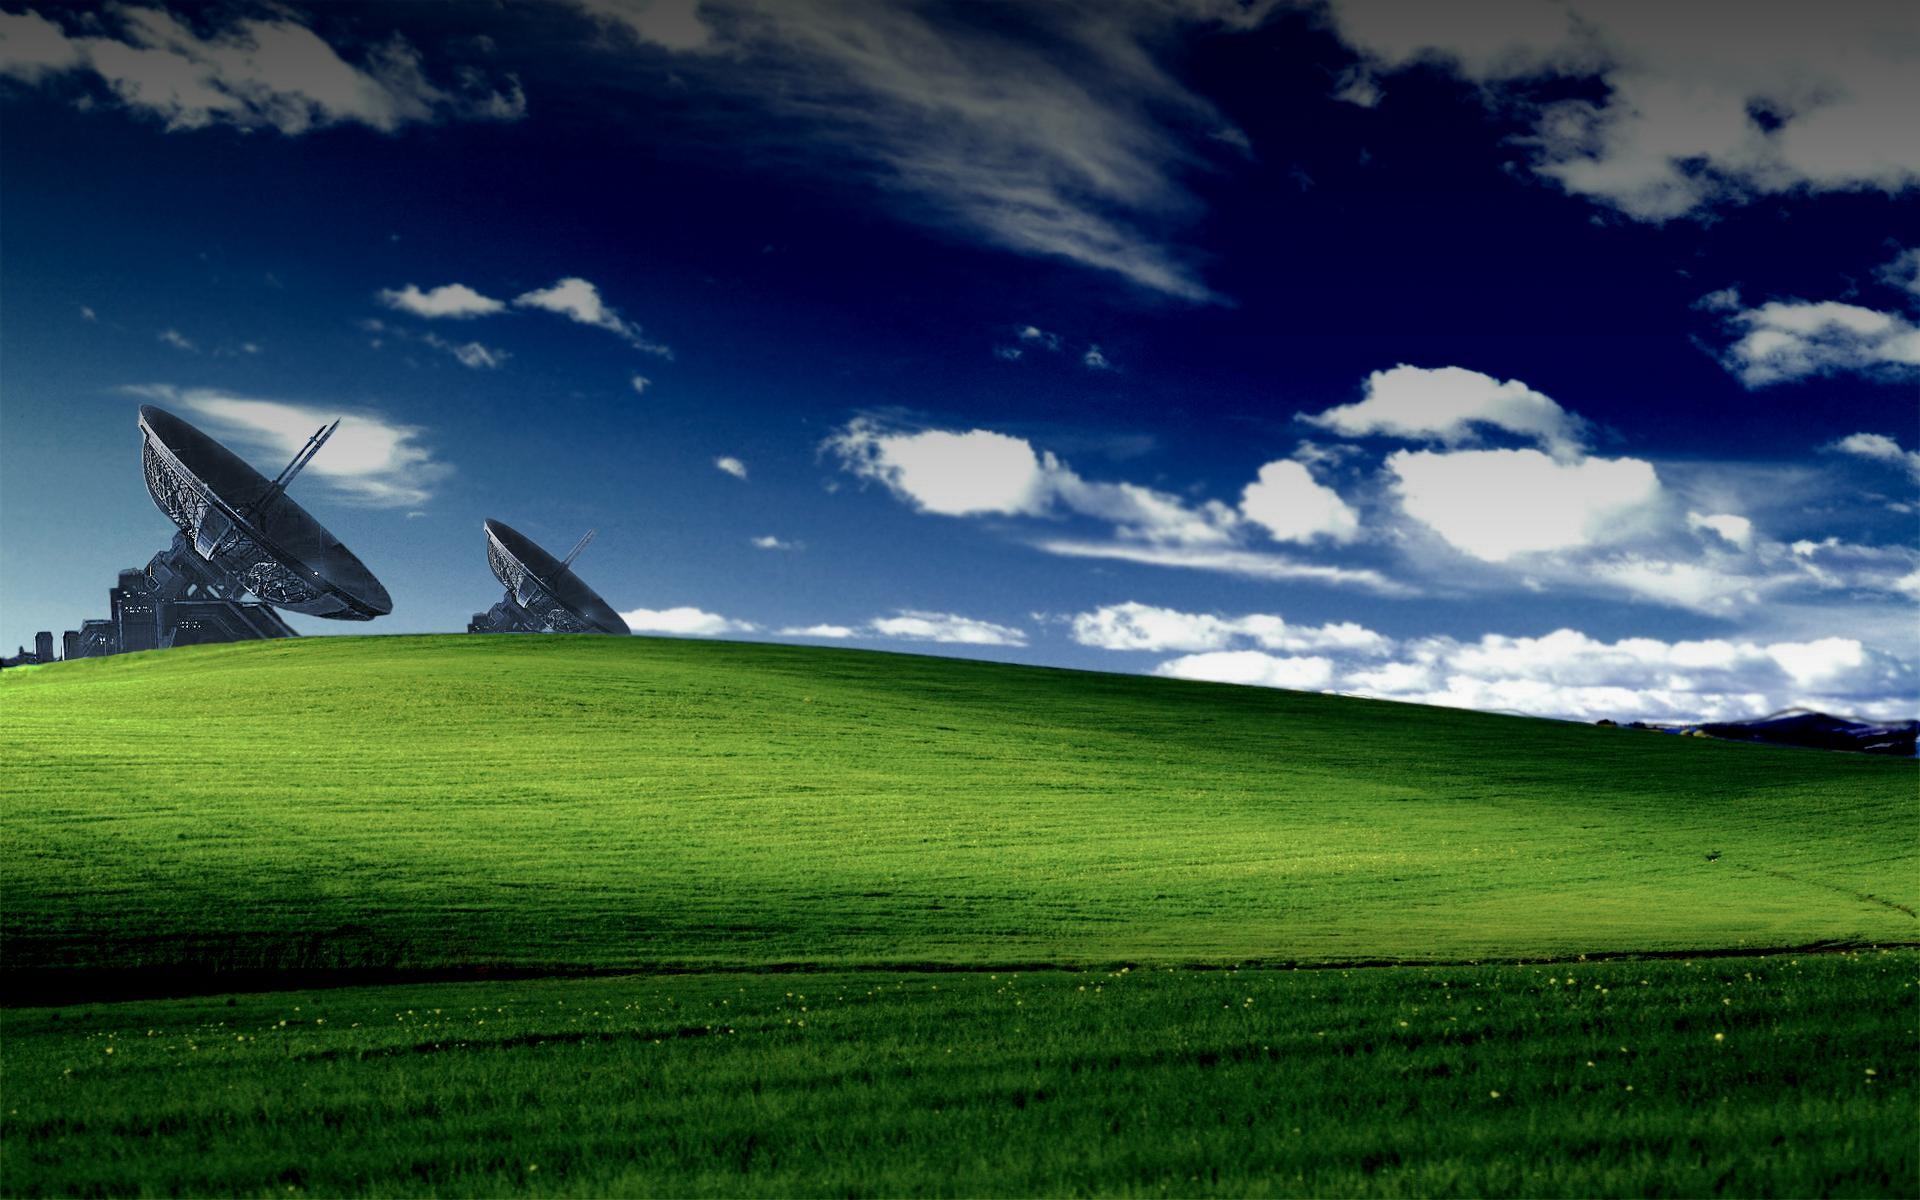 Wallpapers Screensavers Windows Xp 45 Images